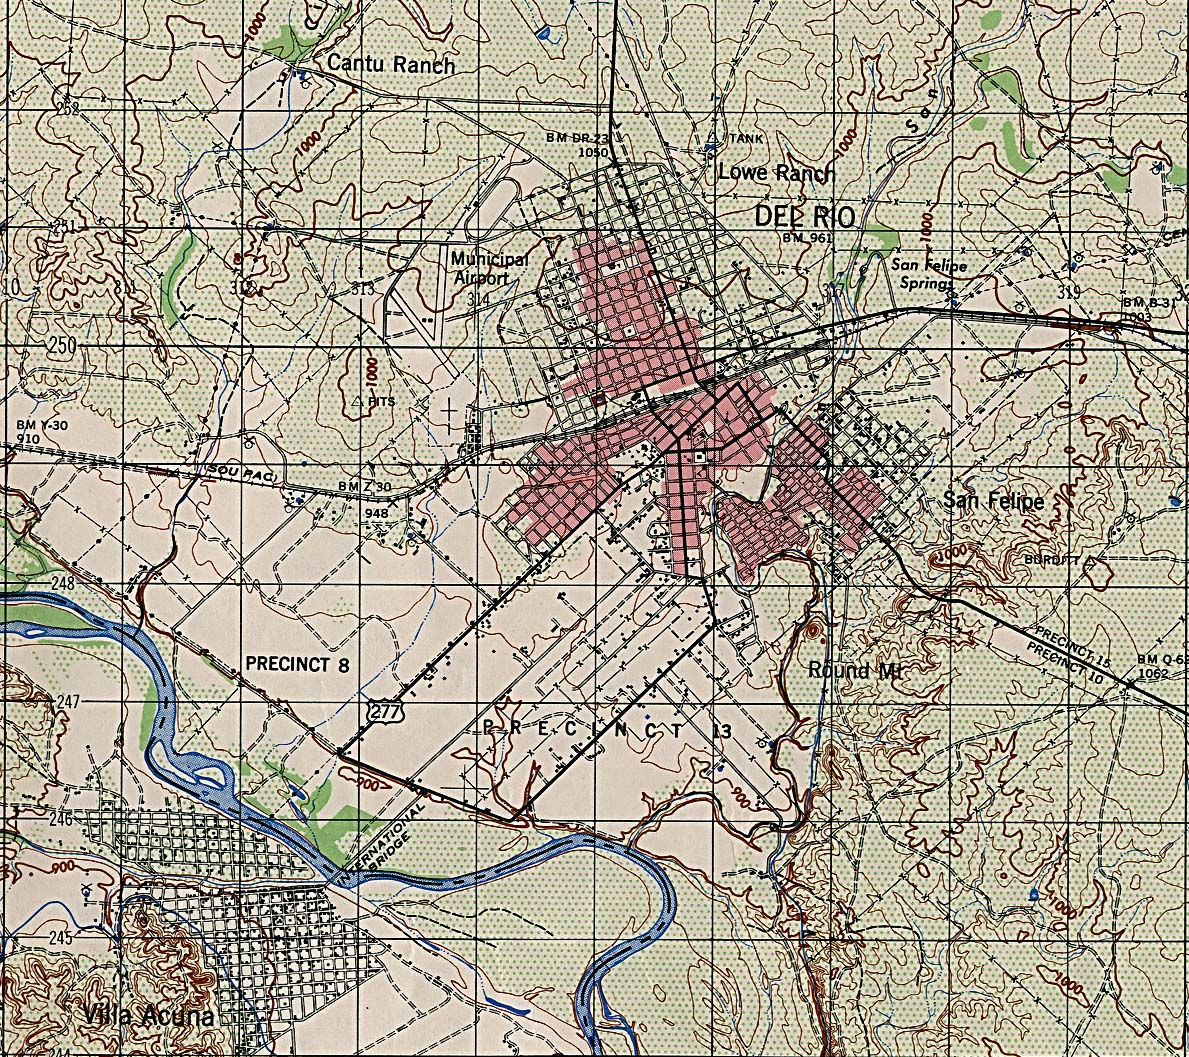 1Up Travel - Maps of Texas Cities.Del Rio [Topographic Map] 1:50,000 ...